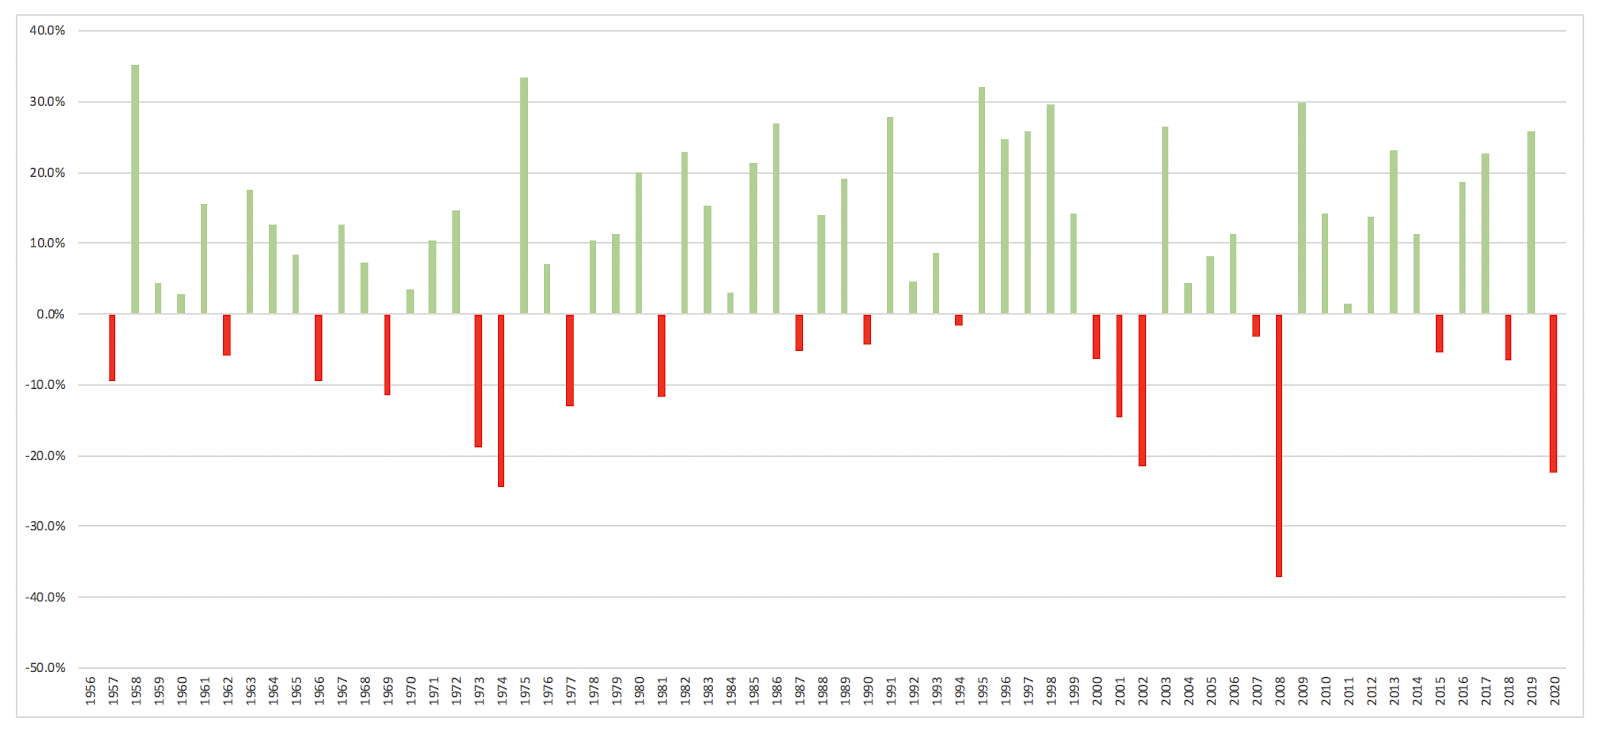 The S&P 500 Index has had positive years 70% of the times since it's launch in 1957